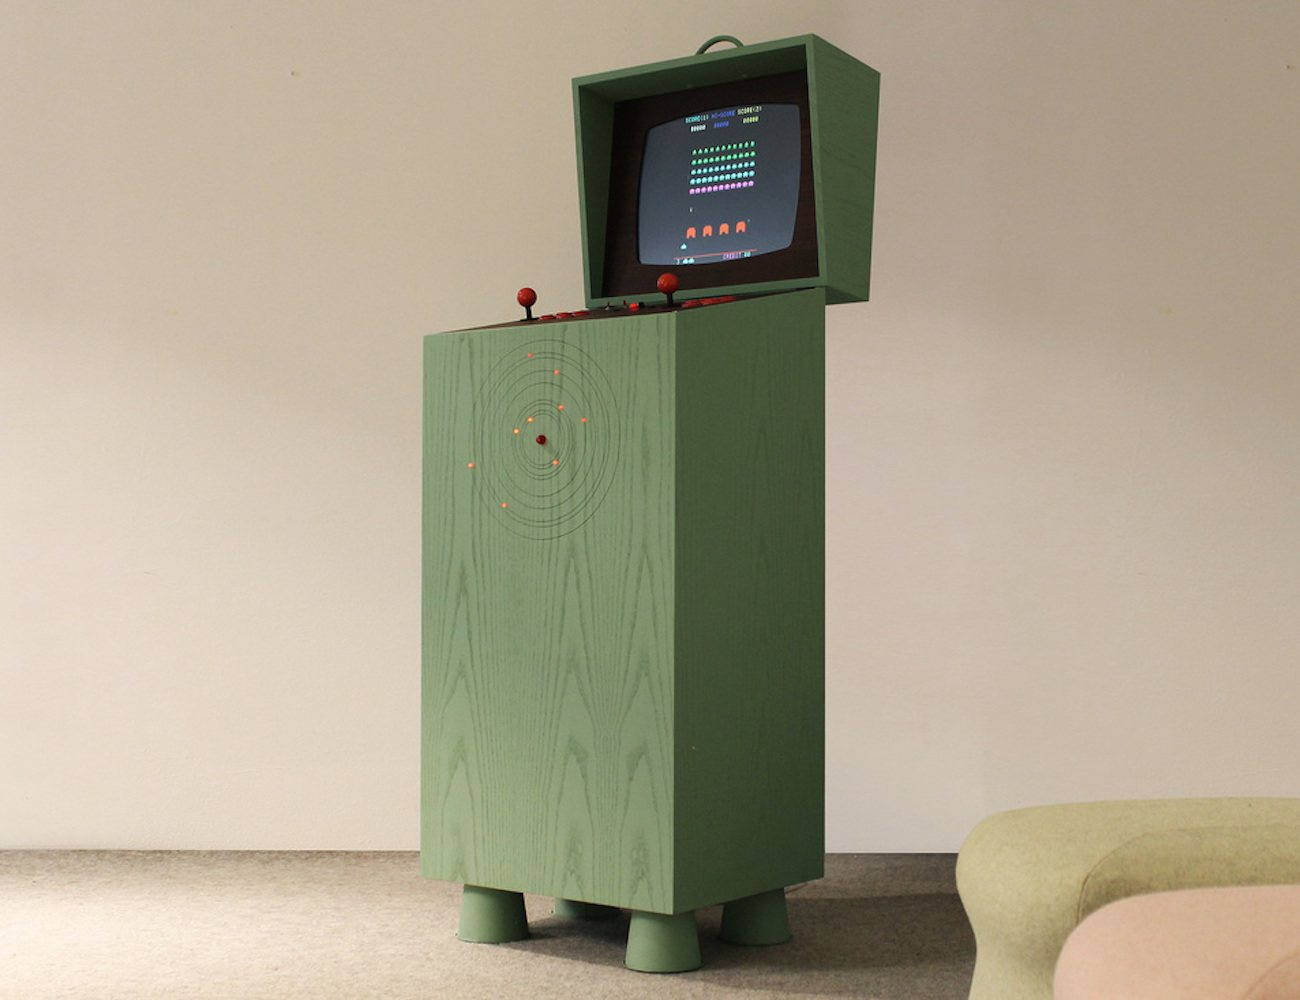 Arcade Cabinet Dimensions Pixelkabinett 42 Handmade Full Size Coin Up Arcade Cabinet